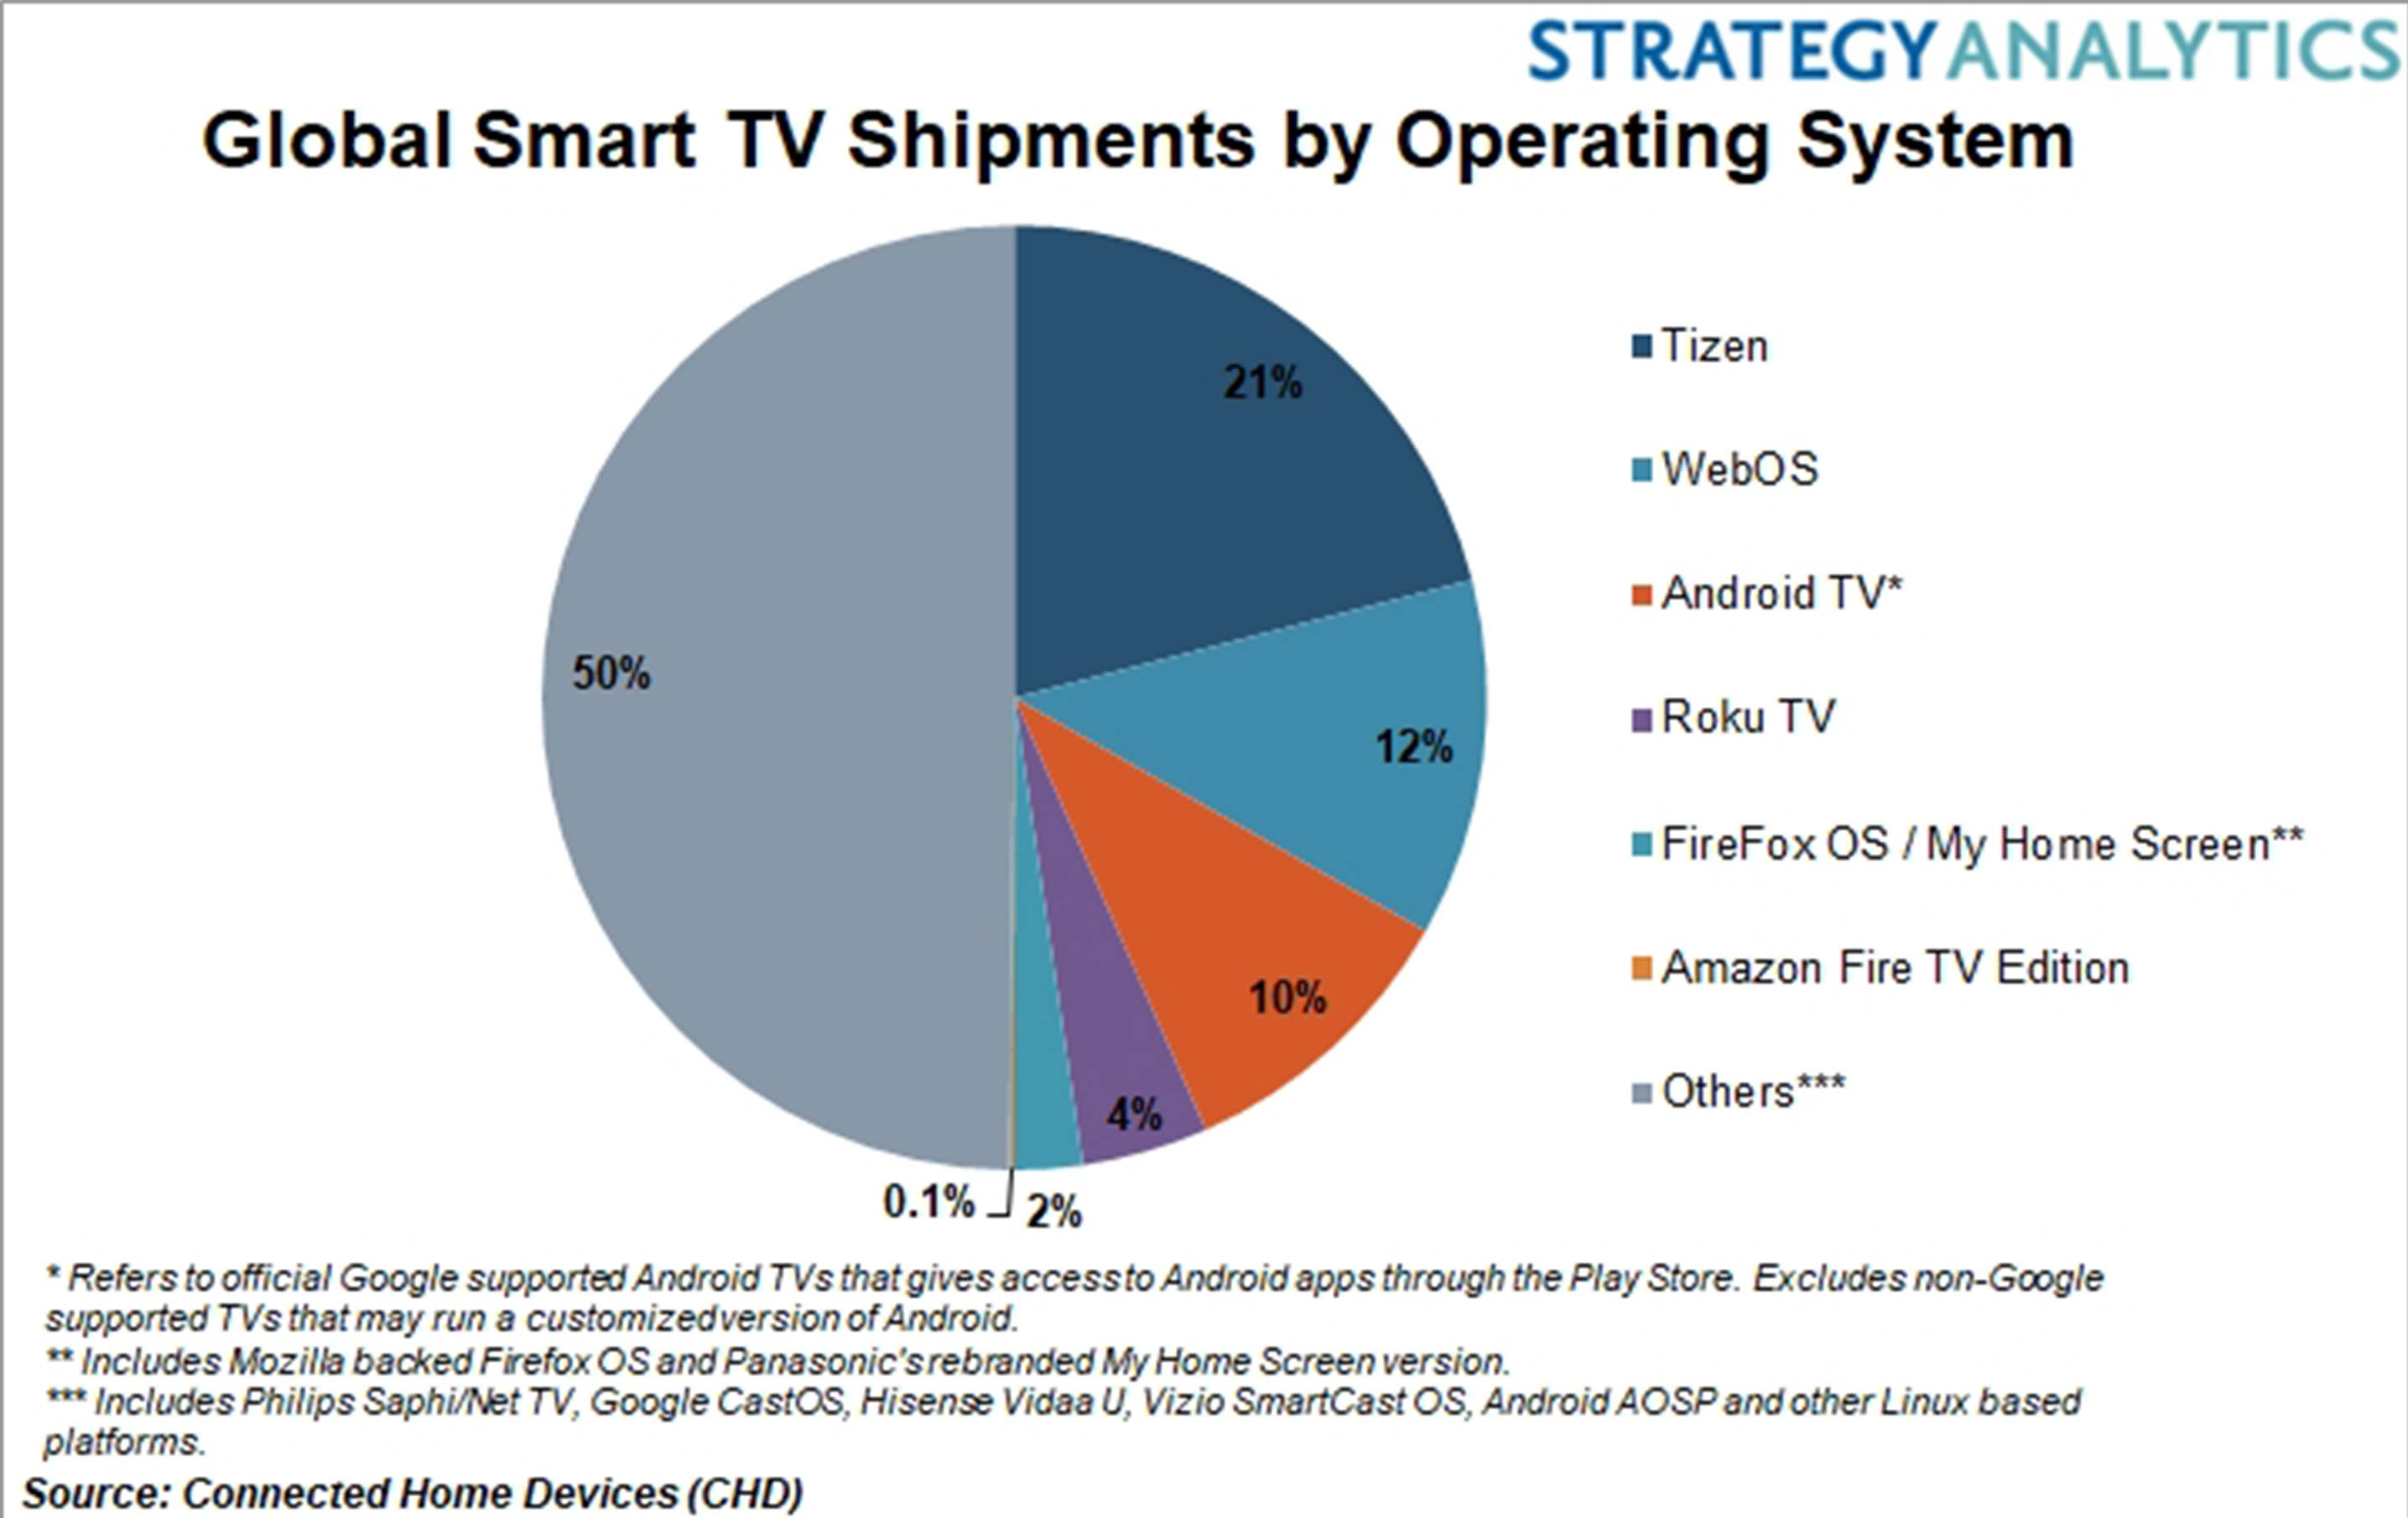 Samsung's Tizen OS leads global smart TV market: report